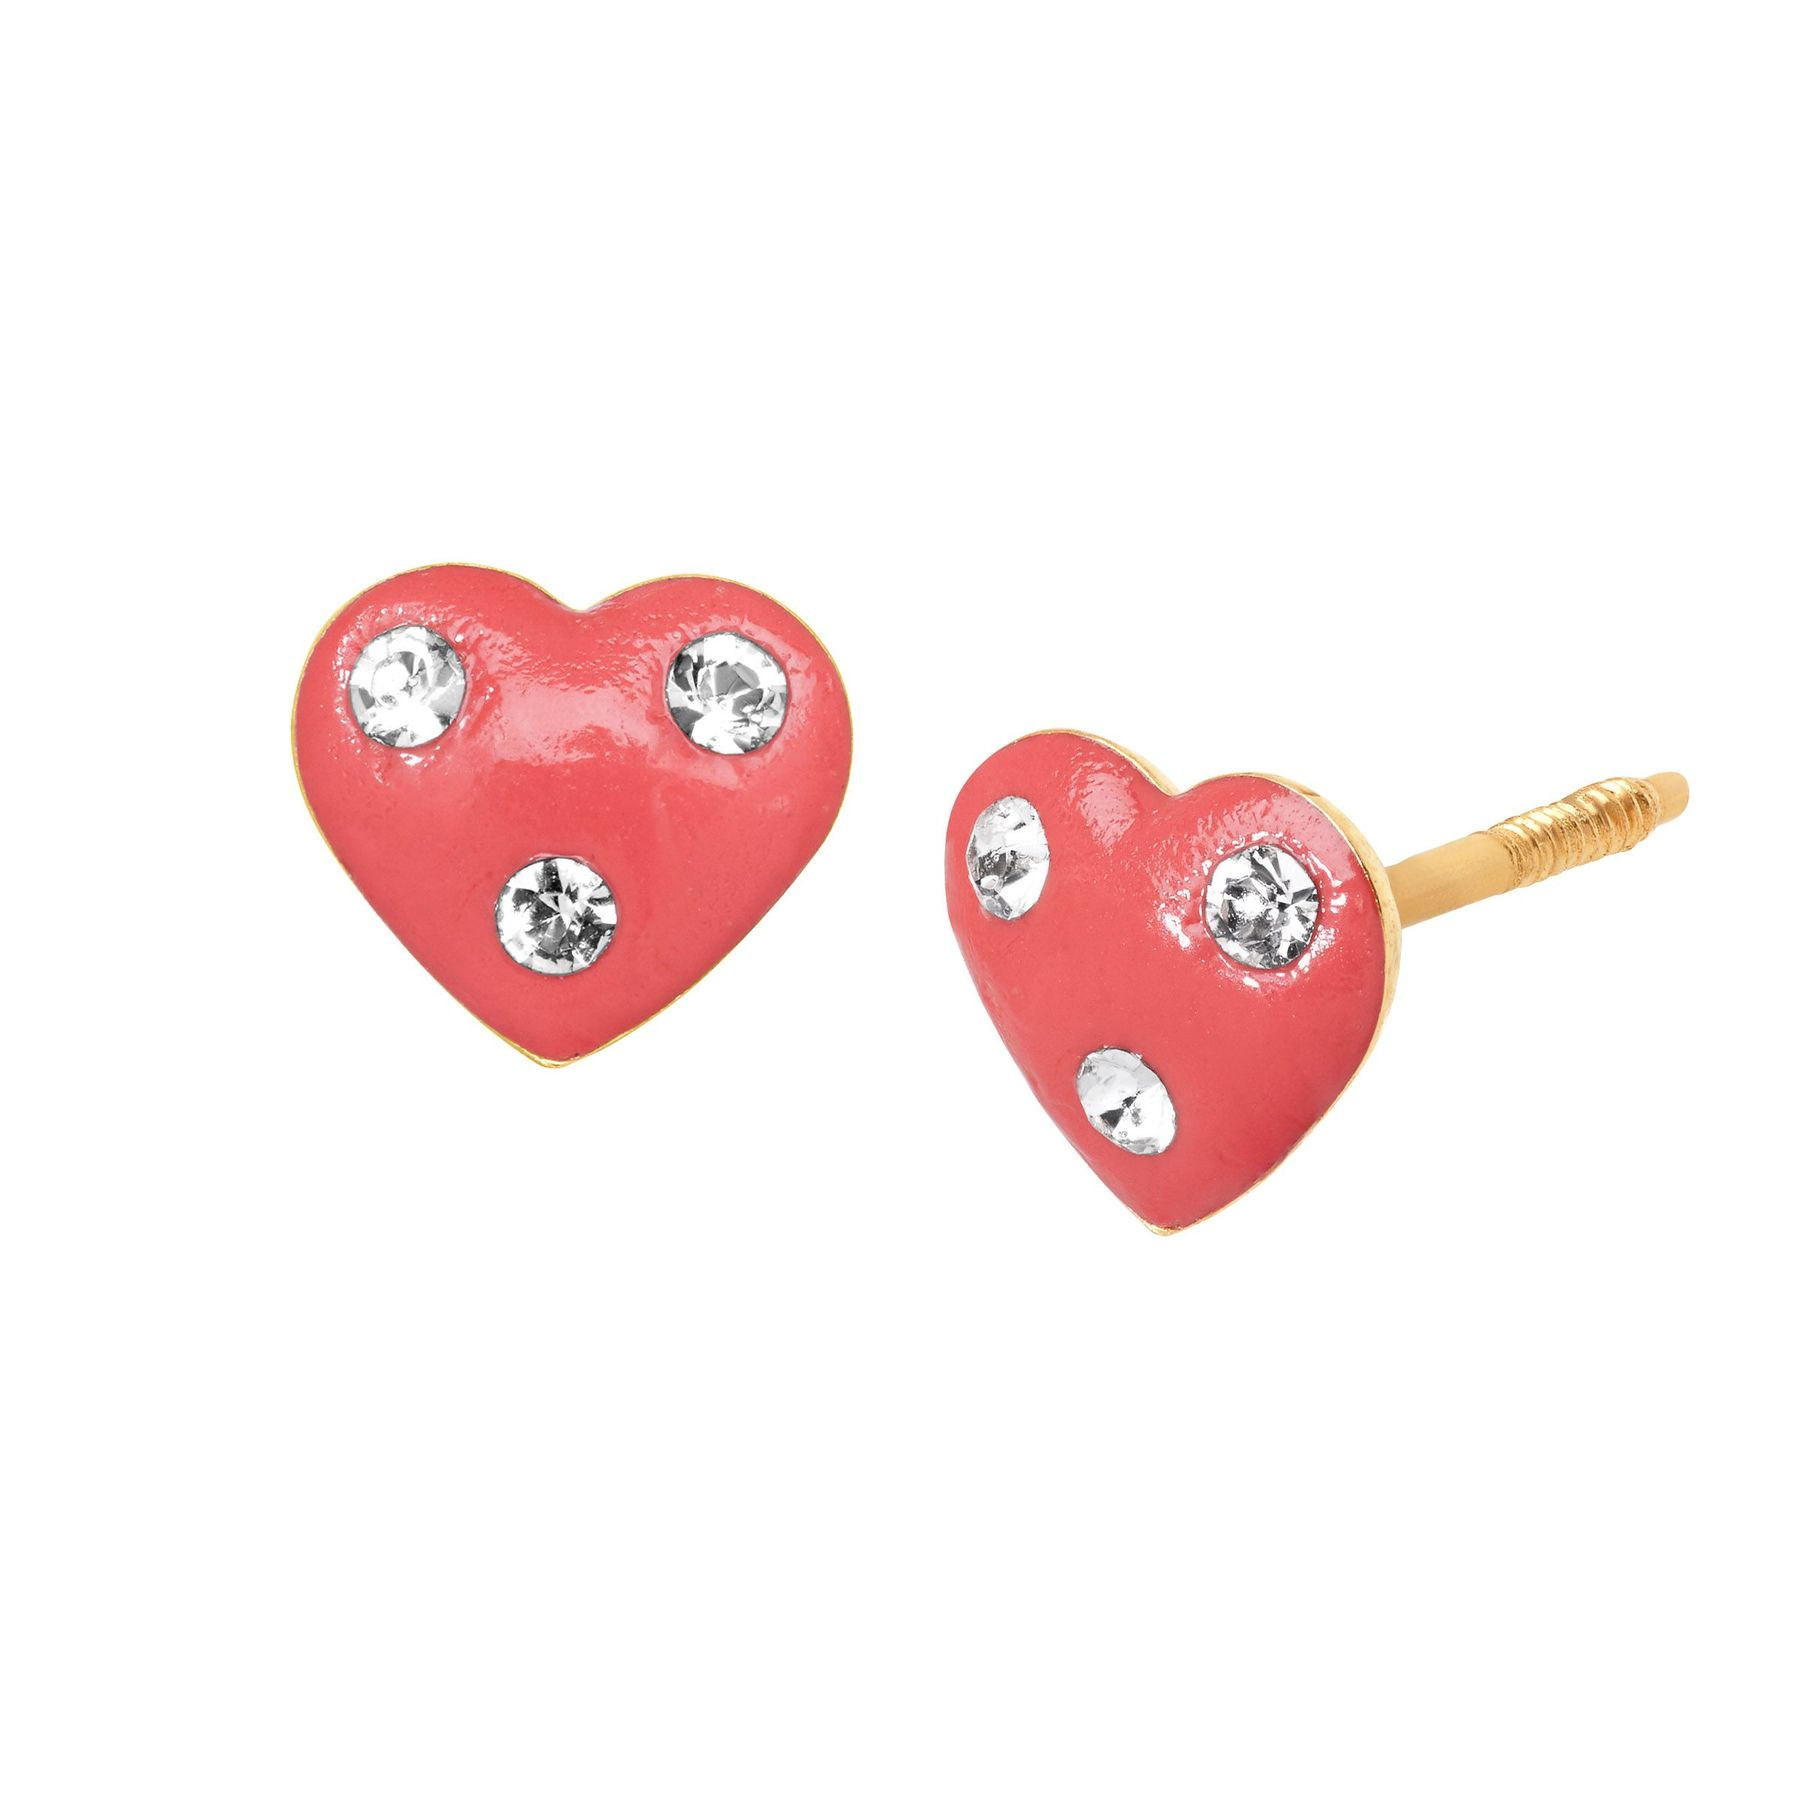 S Pink Heart Stud Earrings With Swarovski Crystals